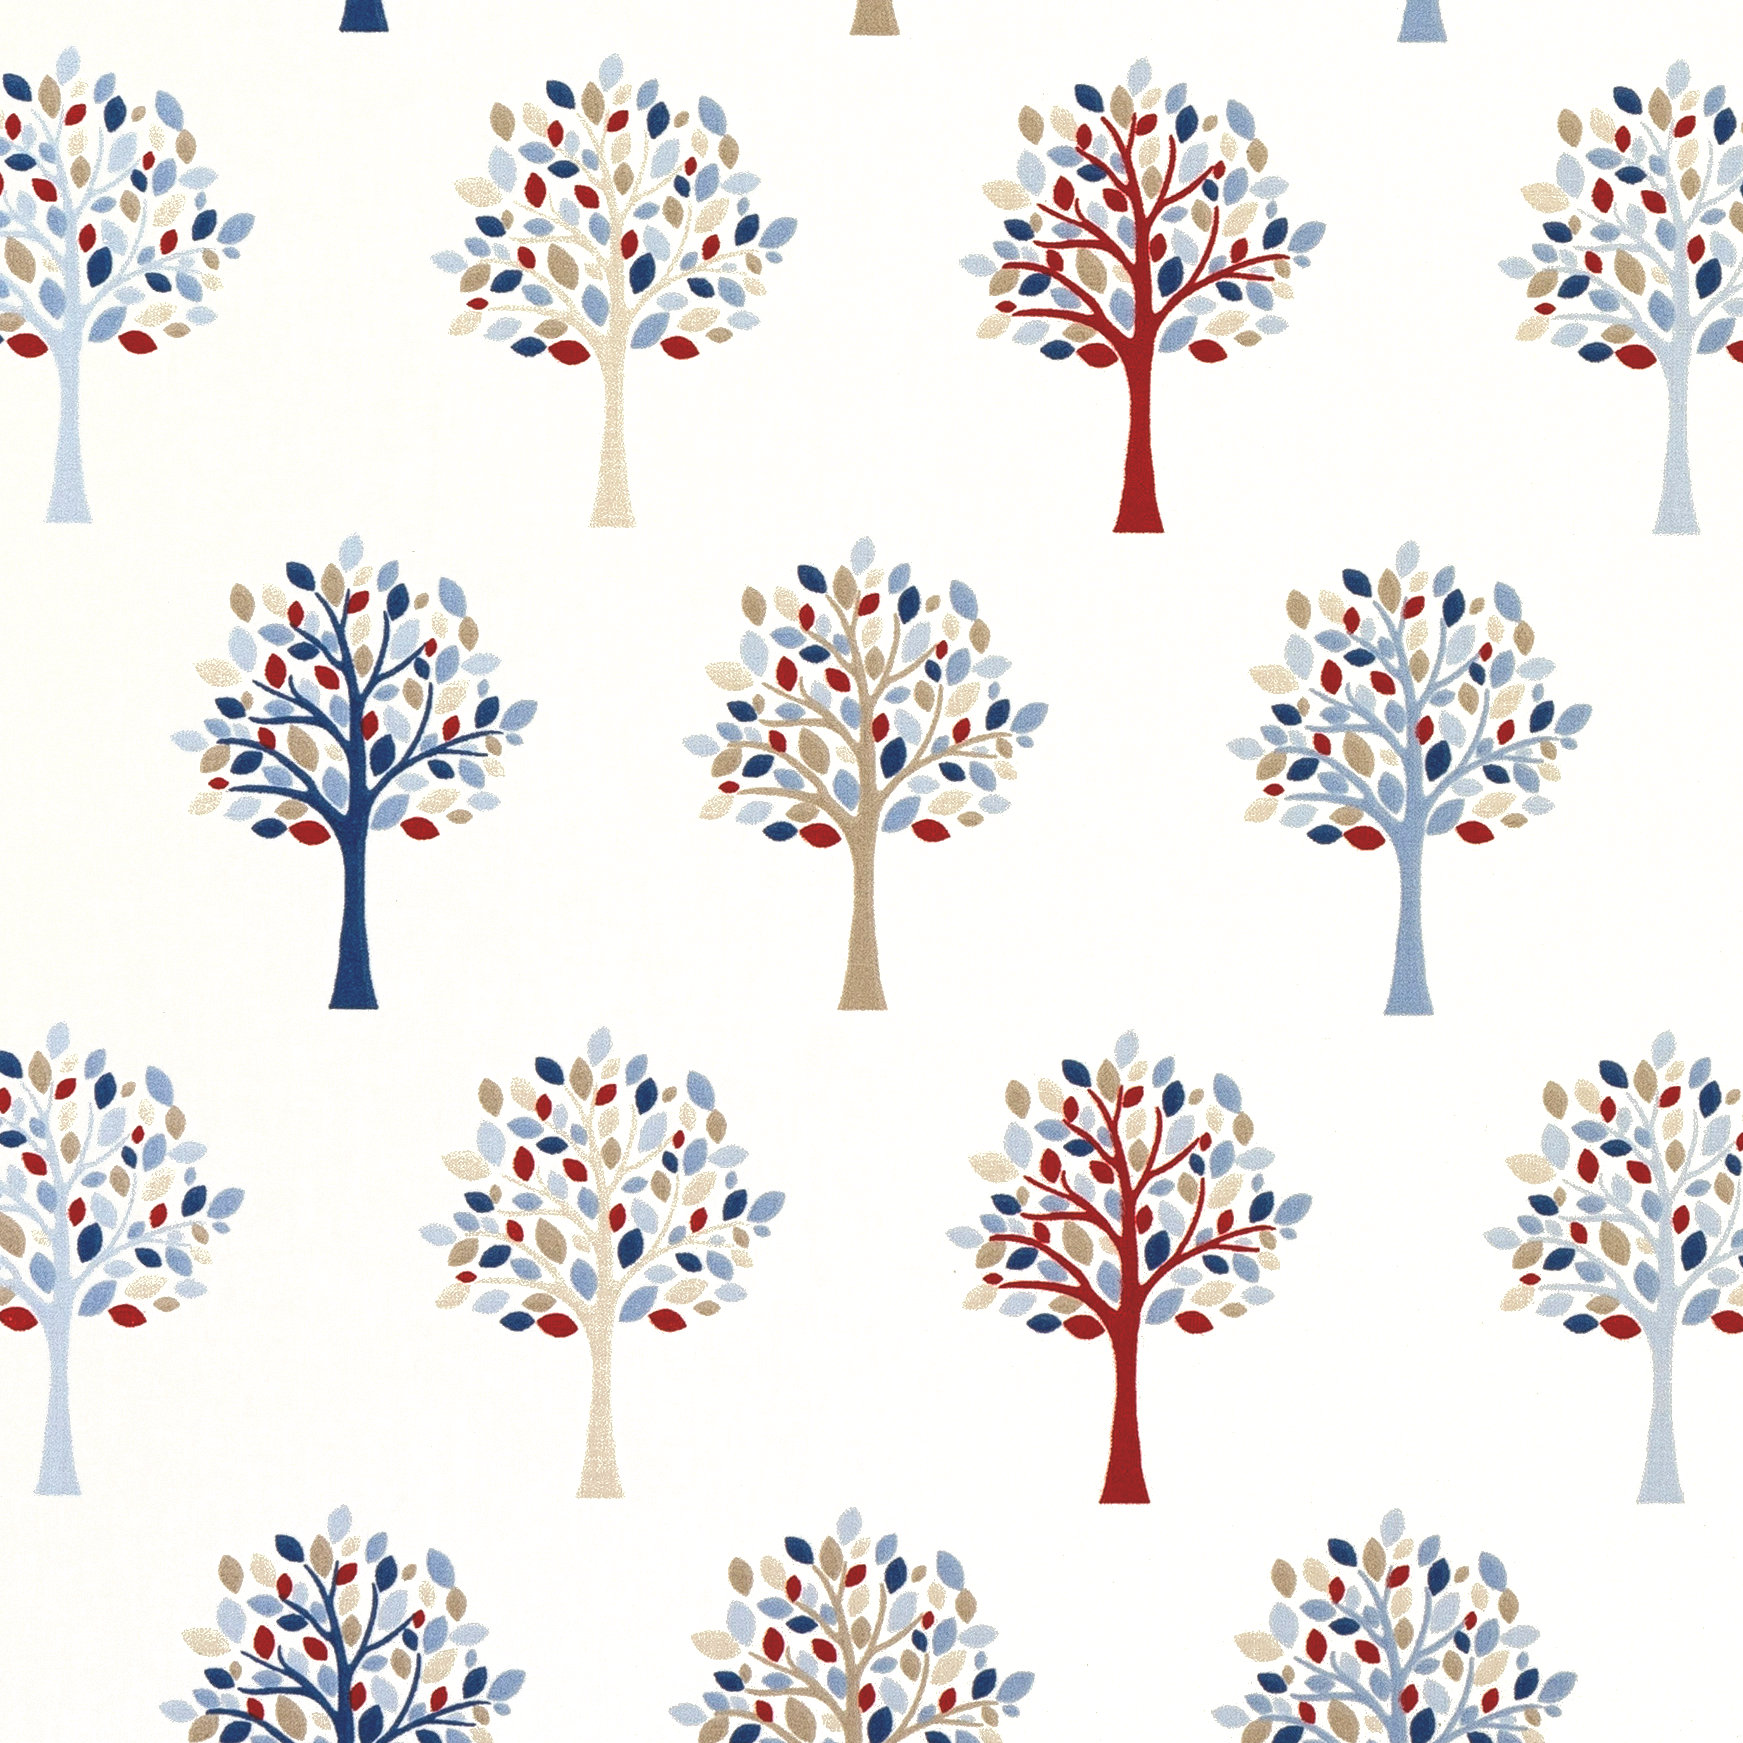 18da7c75b128 Mulberry Tree Blue Gloss Oilcloth - Only Oilcloth